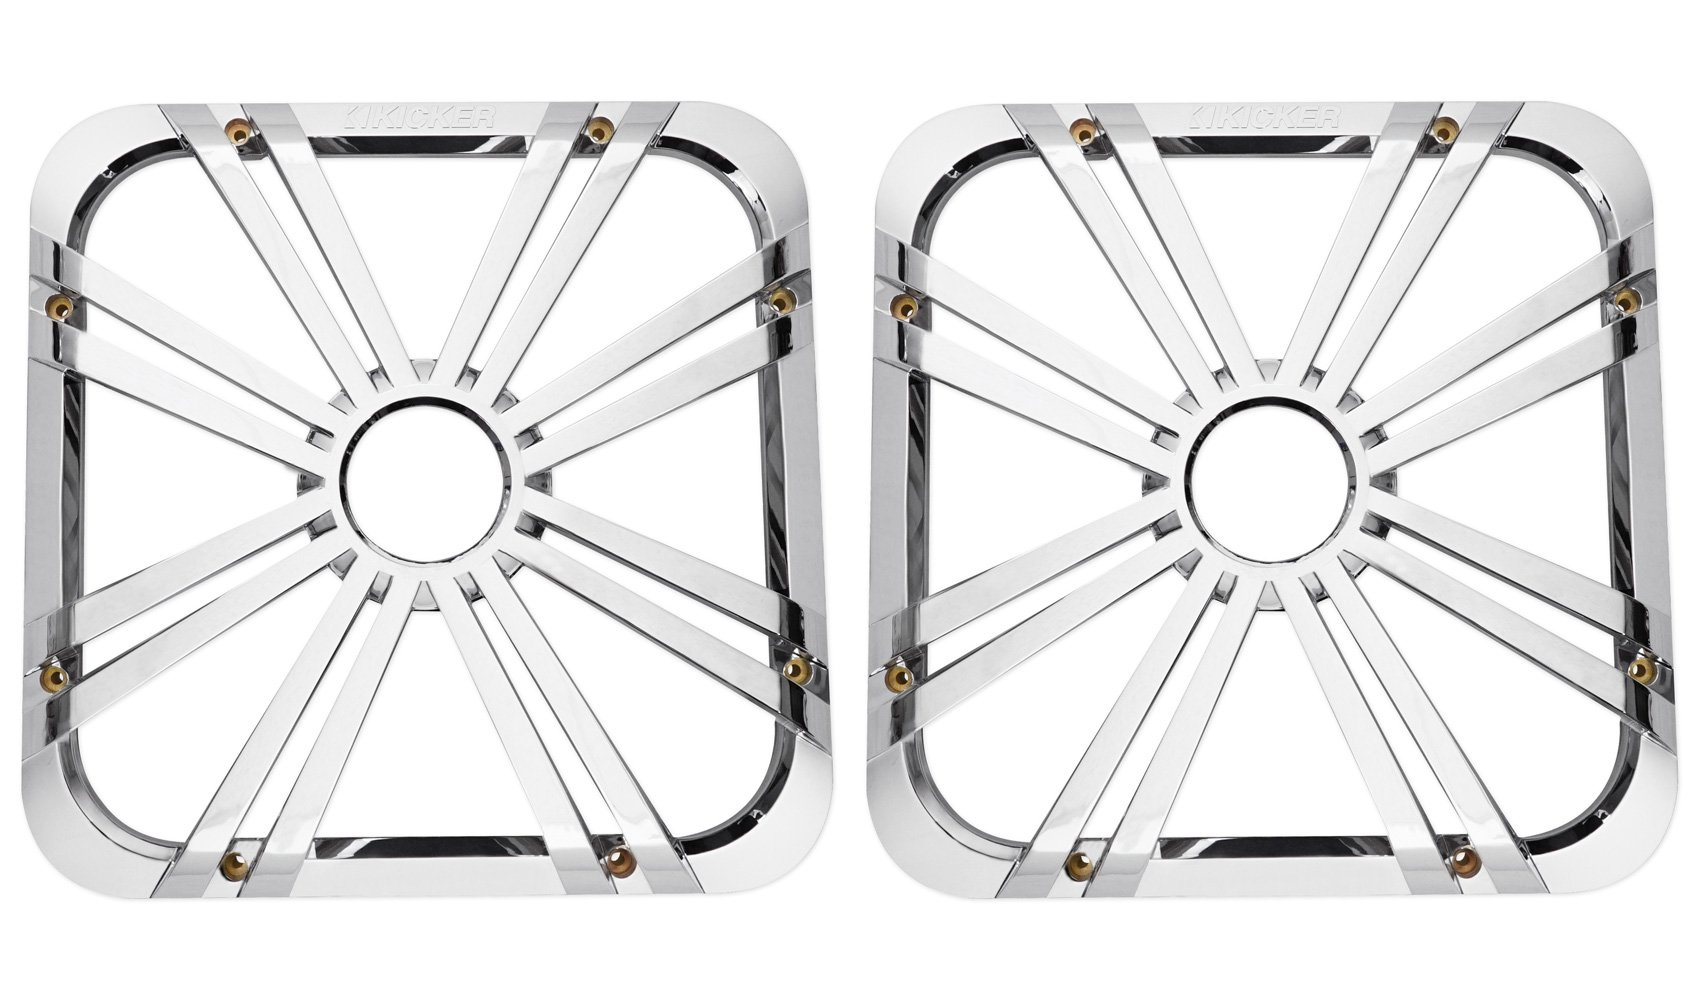 (2) Kicker 11L712GLC 12'' Charcoal Grilles With LED Lighting For SoloBaric 11S12L7 Subwoofer